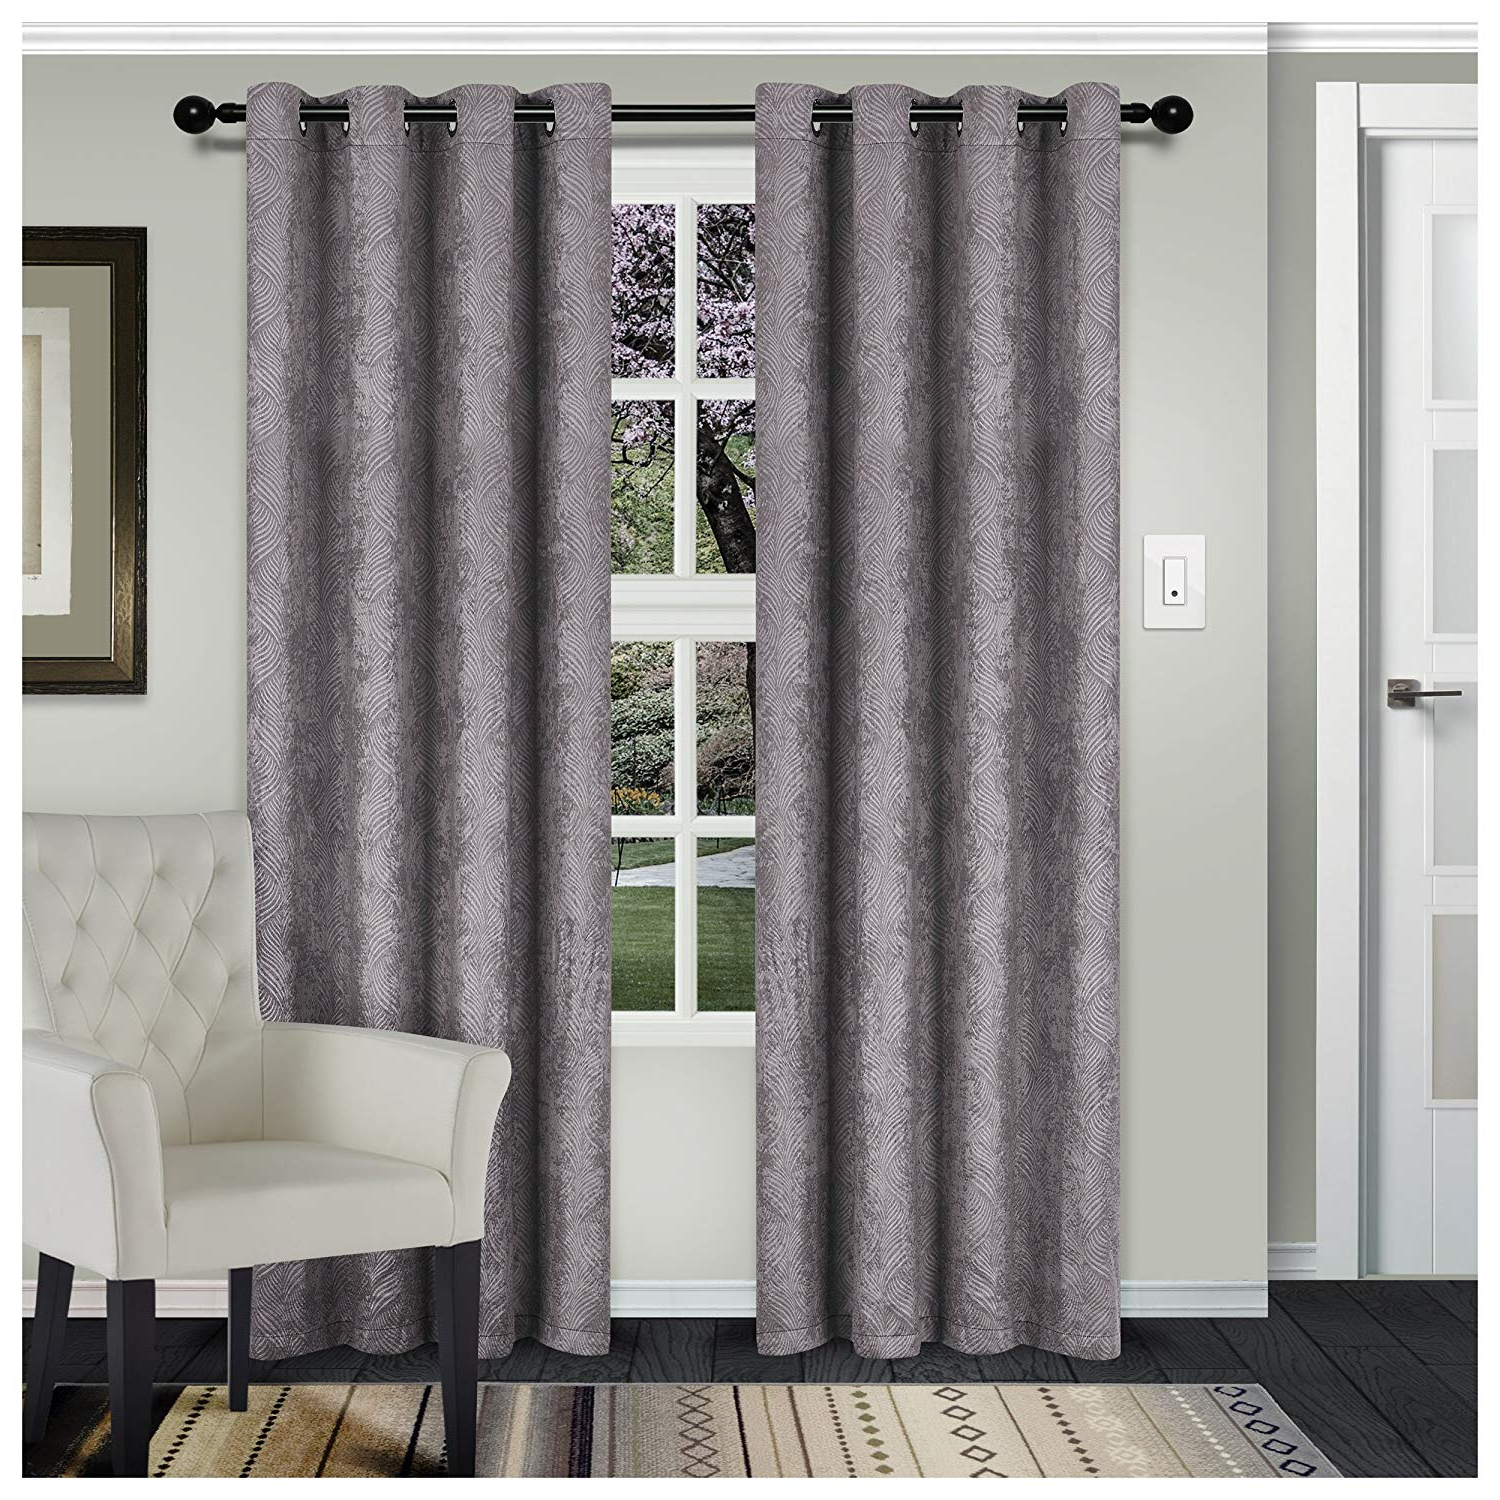 Superior Waverly Blackout Curtain Set Of 2, Thermal Insulated Panel Pair With Grommet Top Header, Beautiful Embossed Wave Room Darkening Drapes, With Regard To Widely Used Insulated Thermal Blackout Curtain Panel Pairs (View 11 of 20)